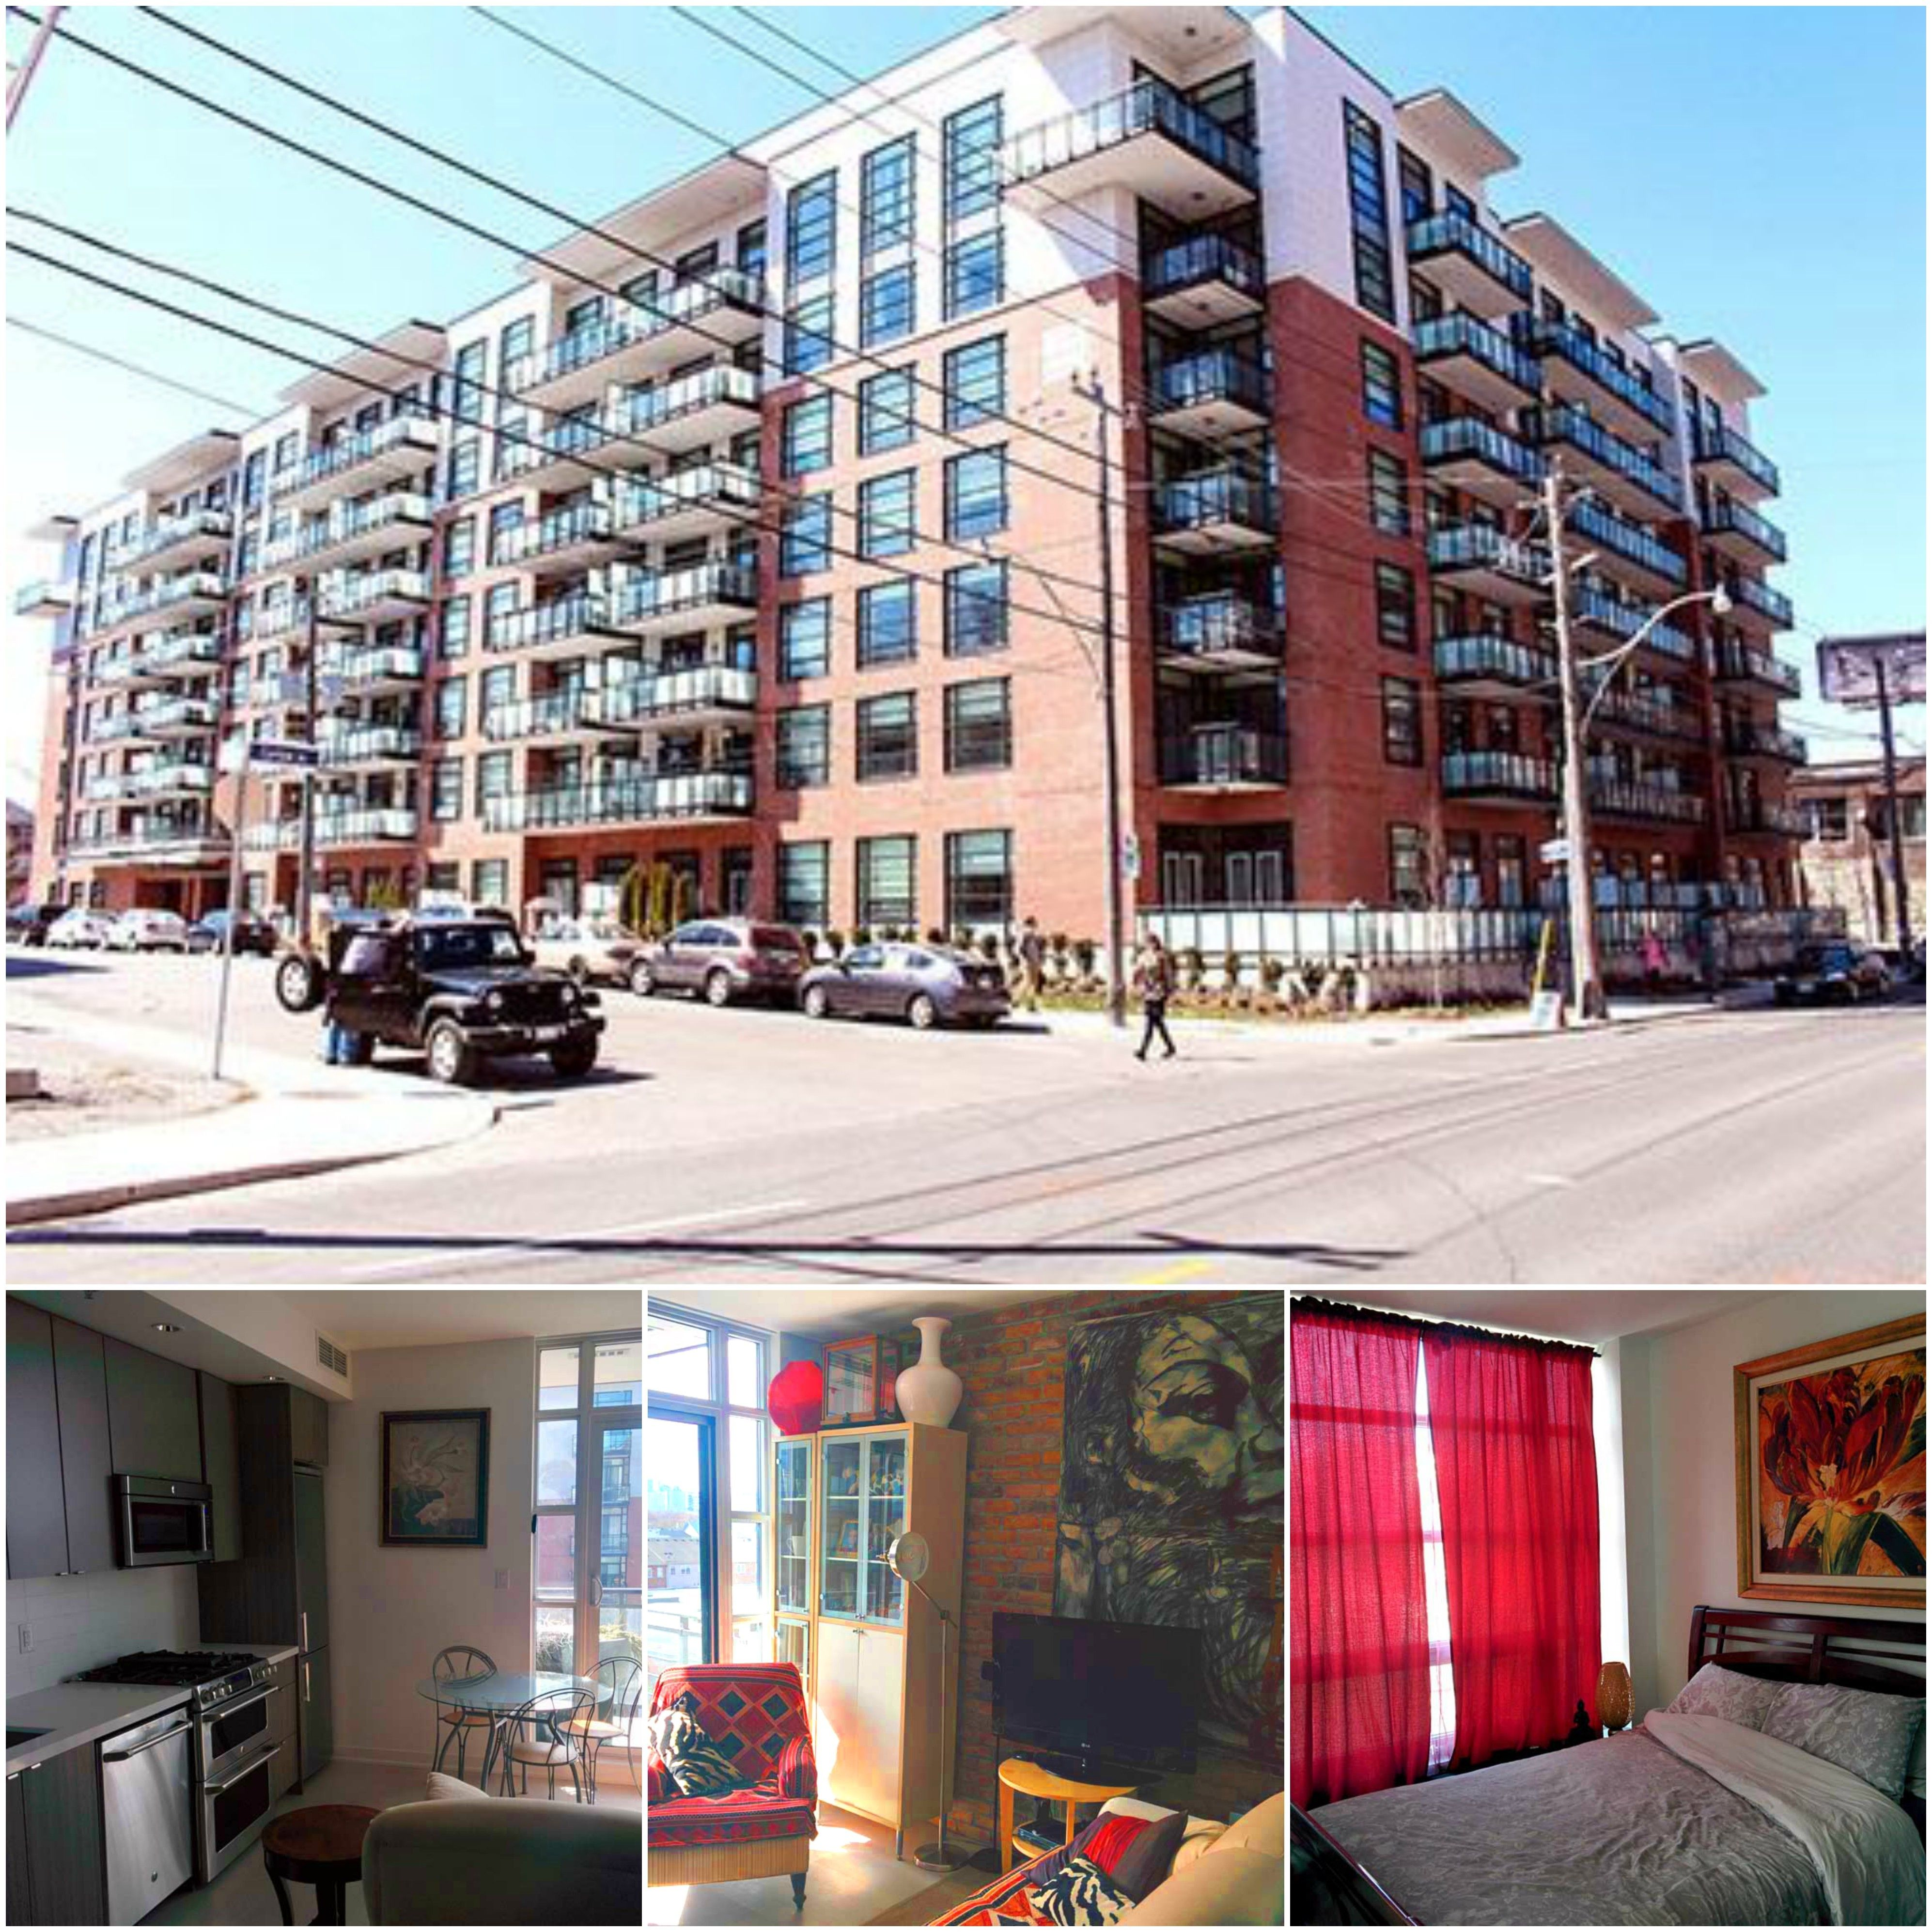 New Listing! Book your showing today! 1 BR 1 WR Condo in